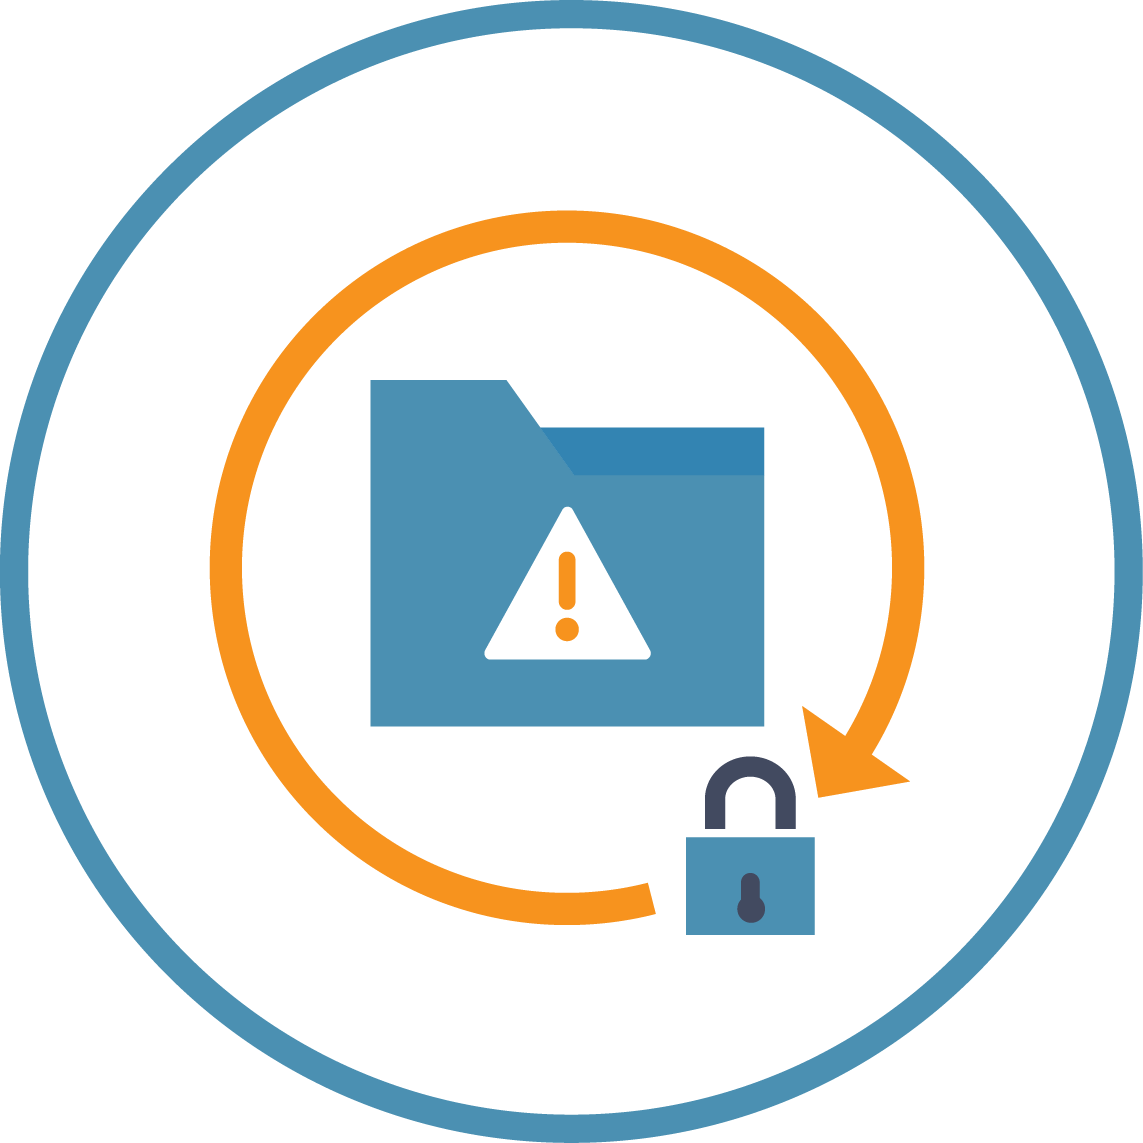 Mitigate Risk icon